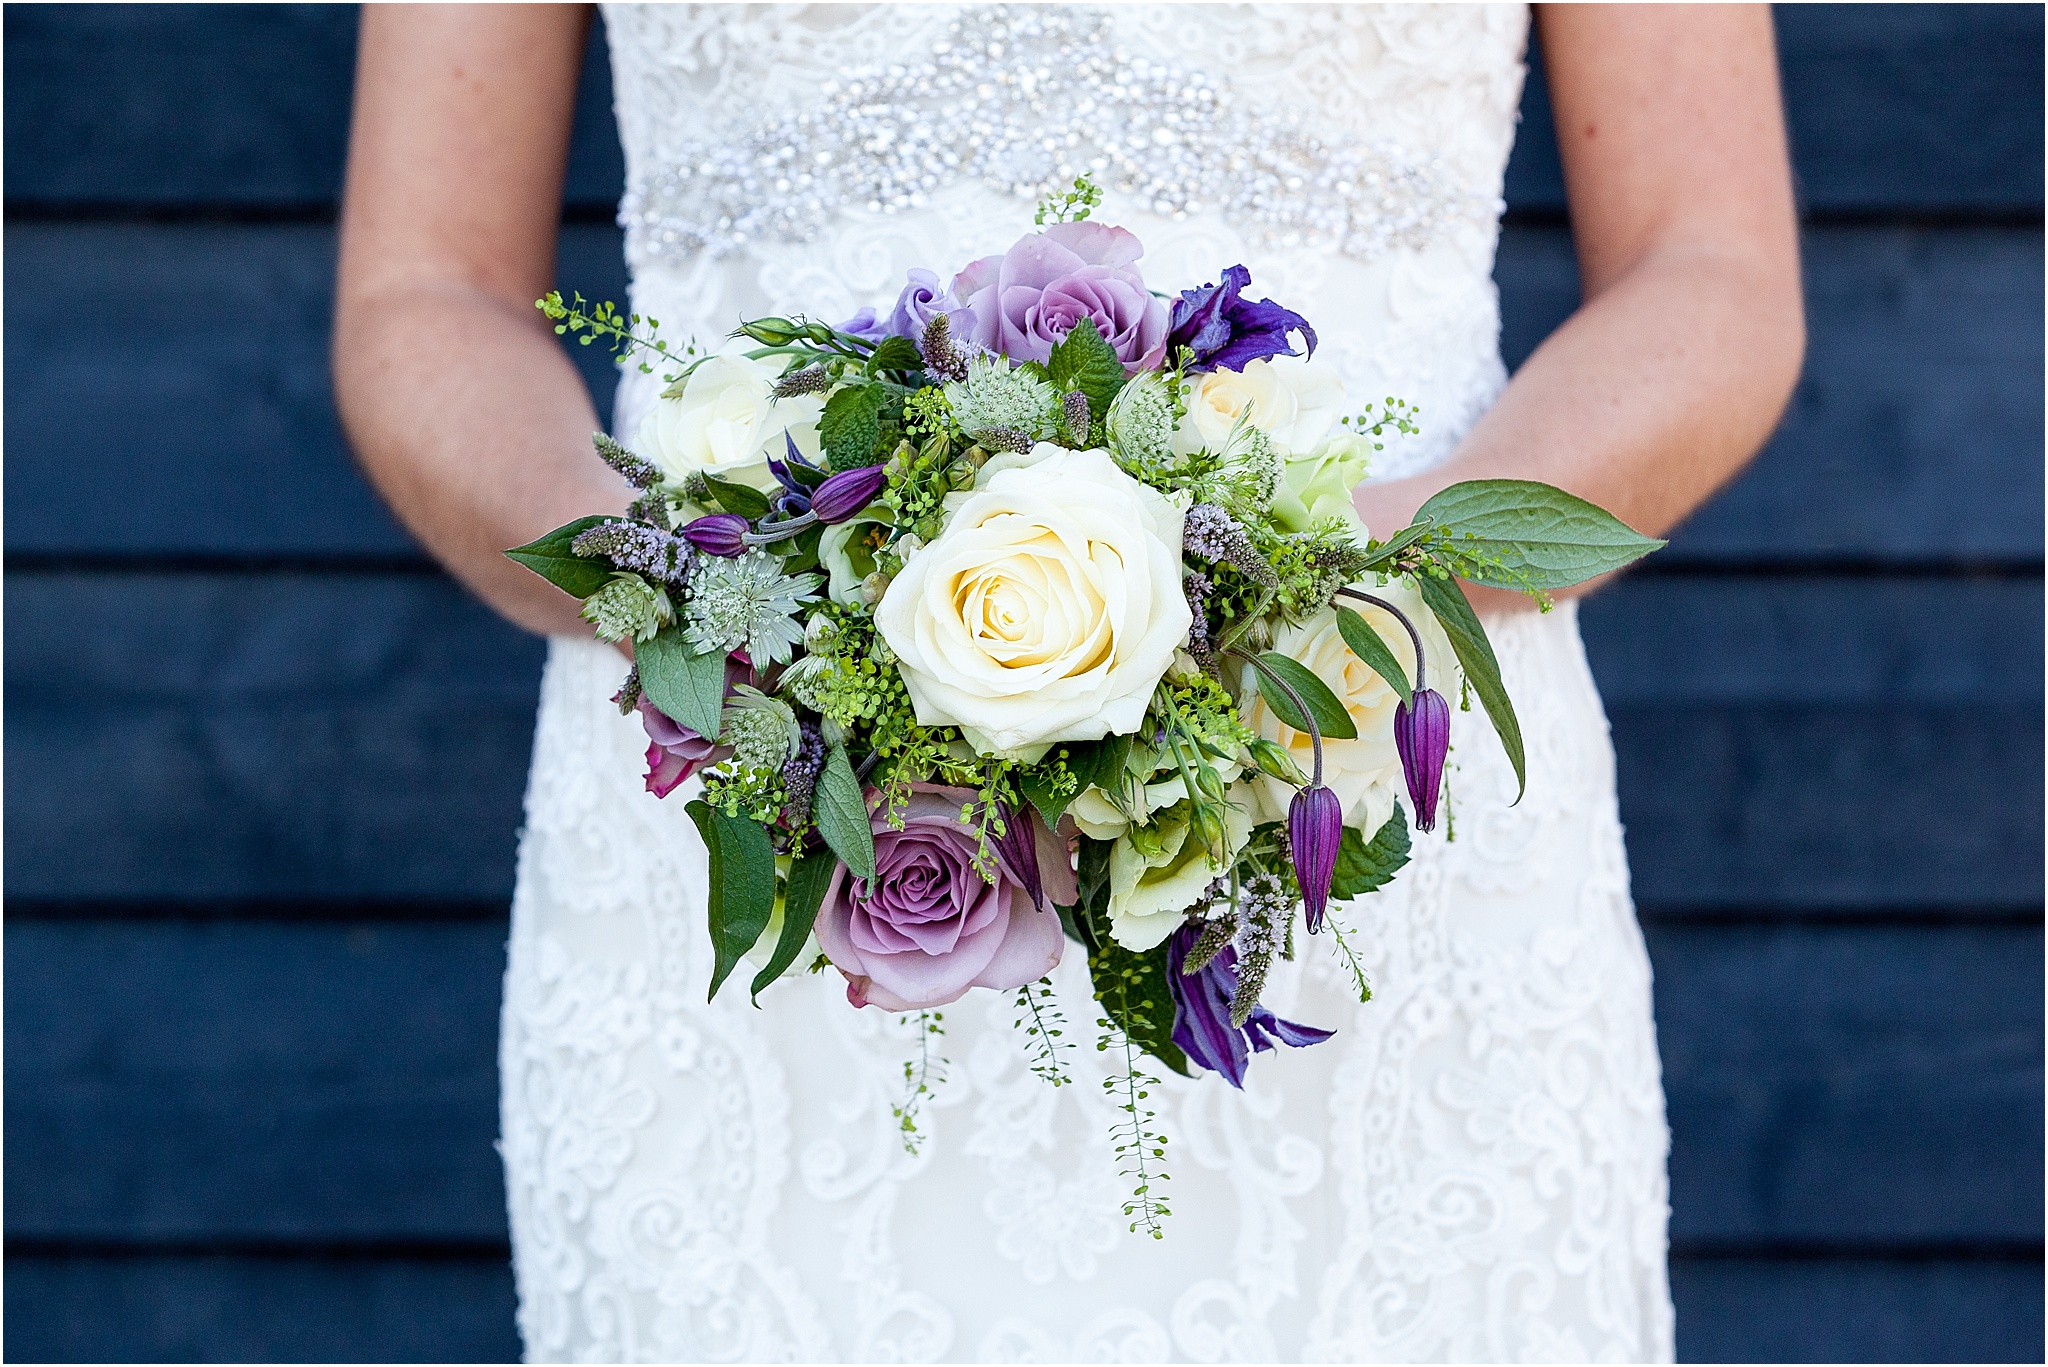 Unique Suffolk Country Style Floristry // 5mins With